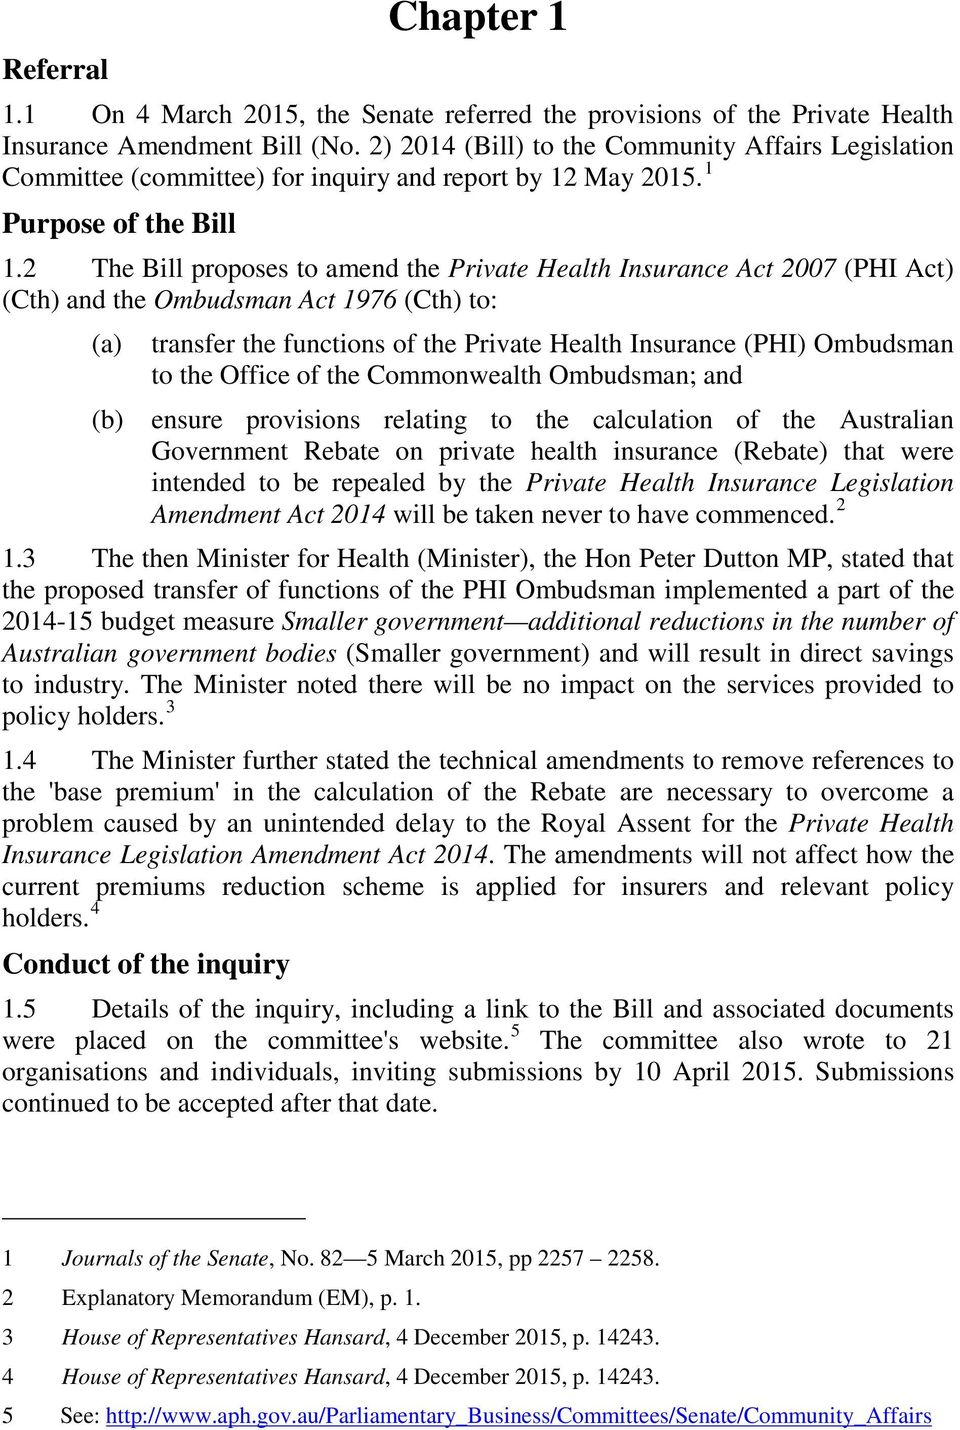 2 The Bill proposes to amend the Private Health Insurance Act 2007 (PHI Act) (Cth) and the Ombudsman Act 1976 (Cth) to: (a) transfer the functions of the Private Health Insurance (PHI) Ombudsman to